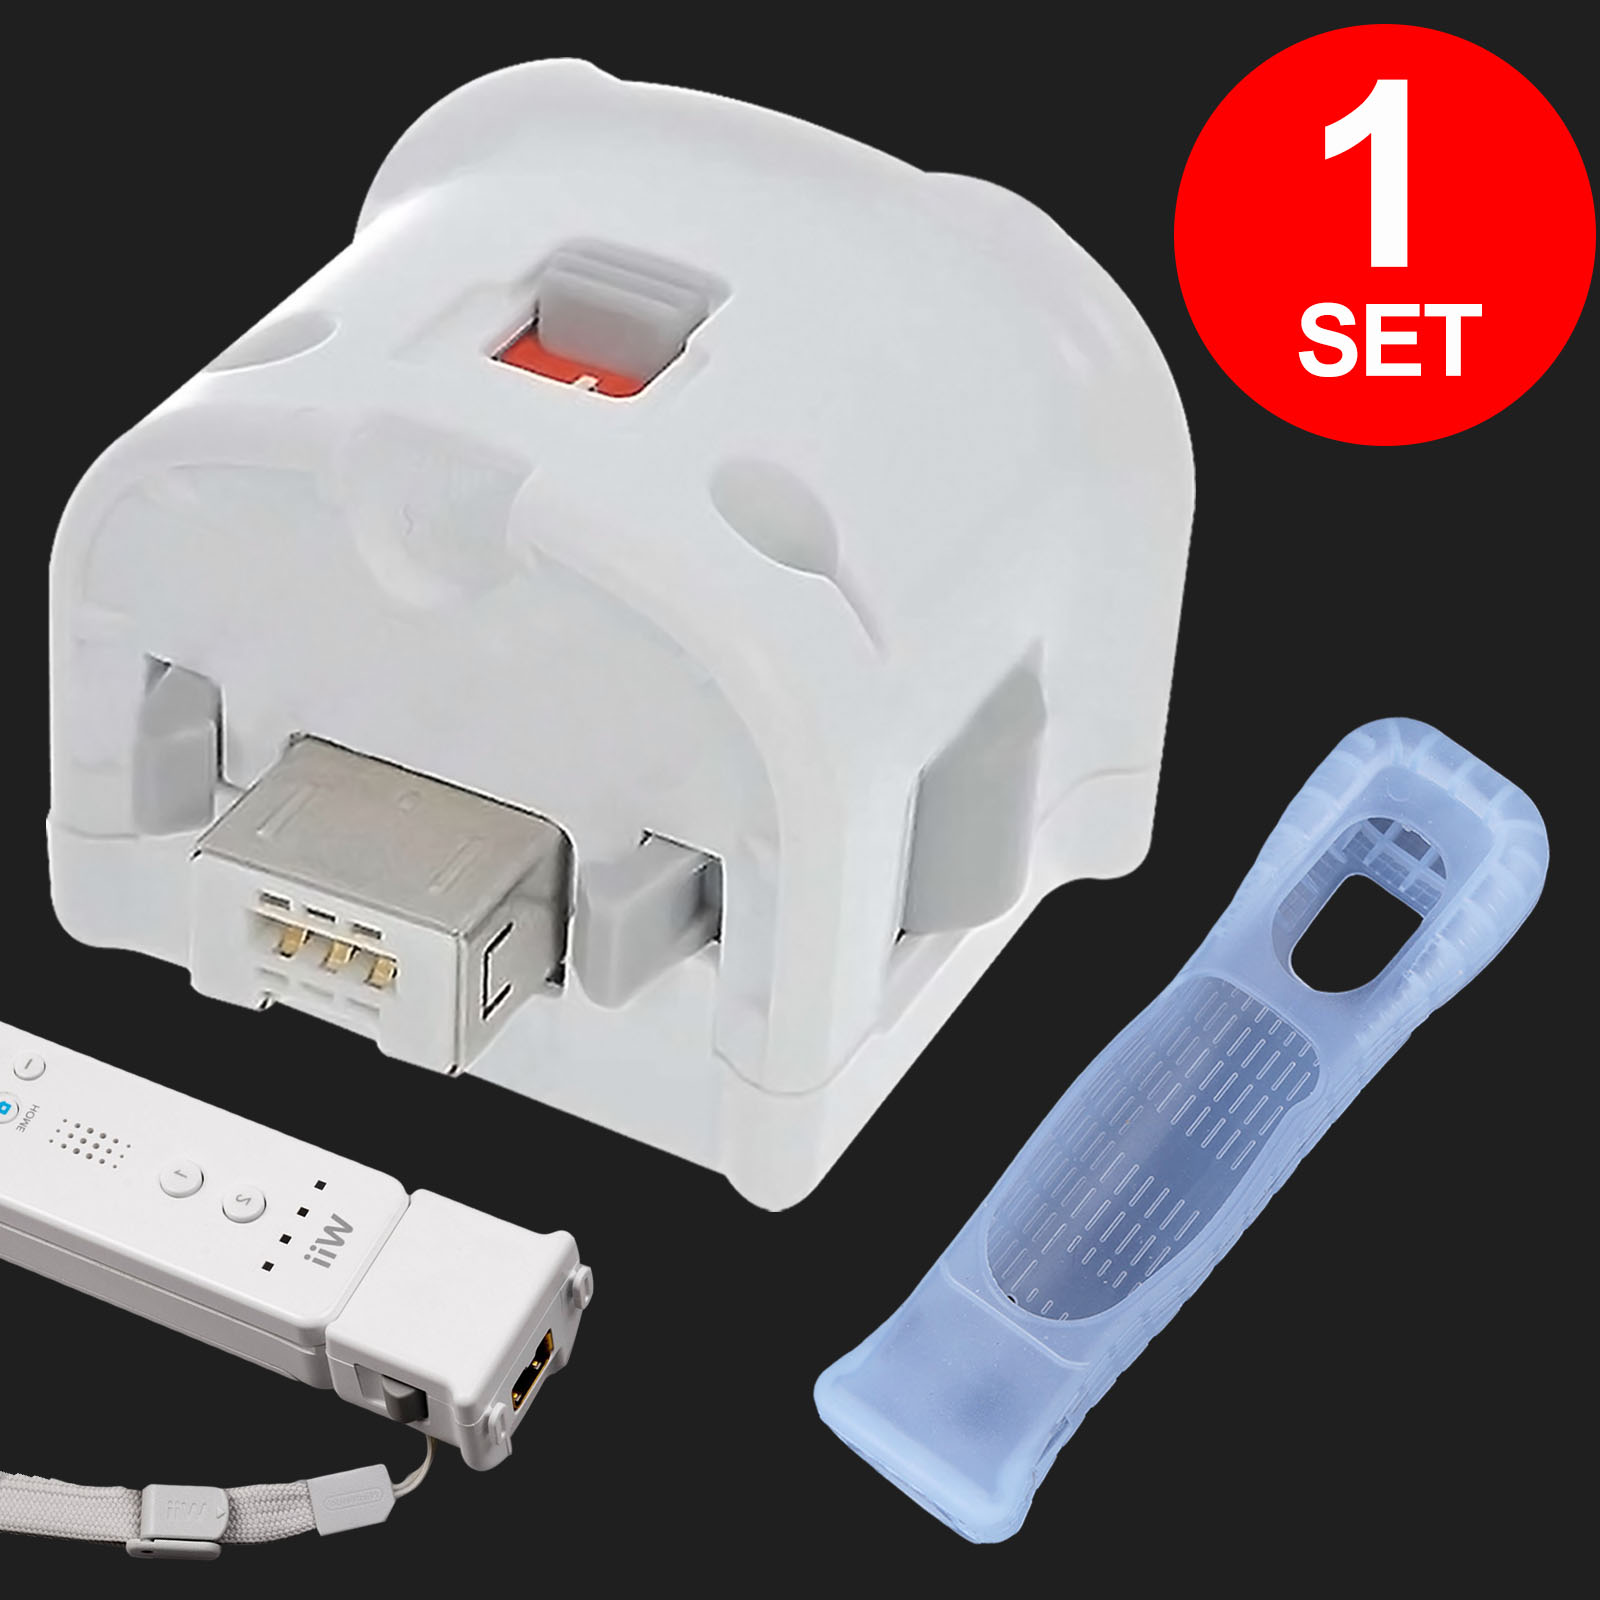 TSV Wii Motion Plus Adapter Wii Remote Plus Sensor Adapter & Silicon Case Cover For Nintendo Wii Remote